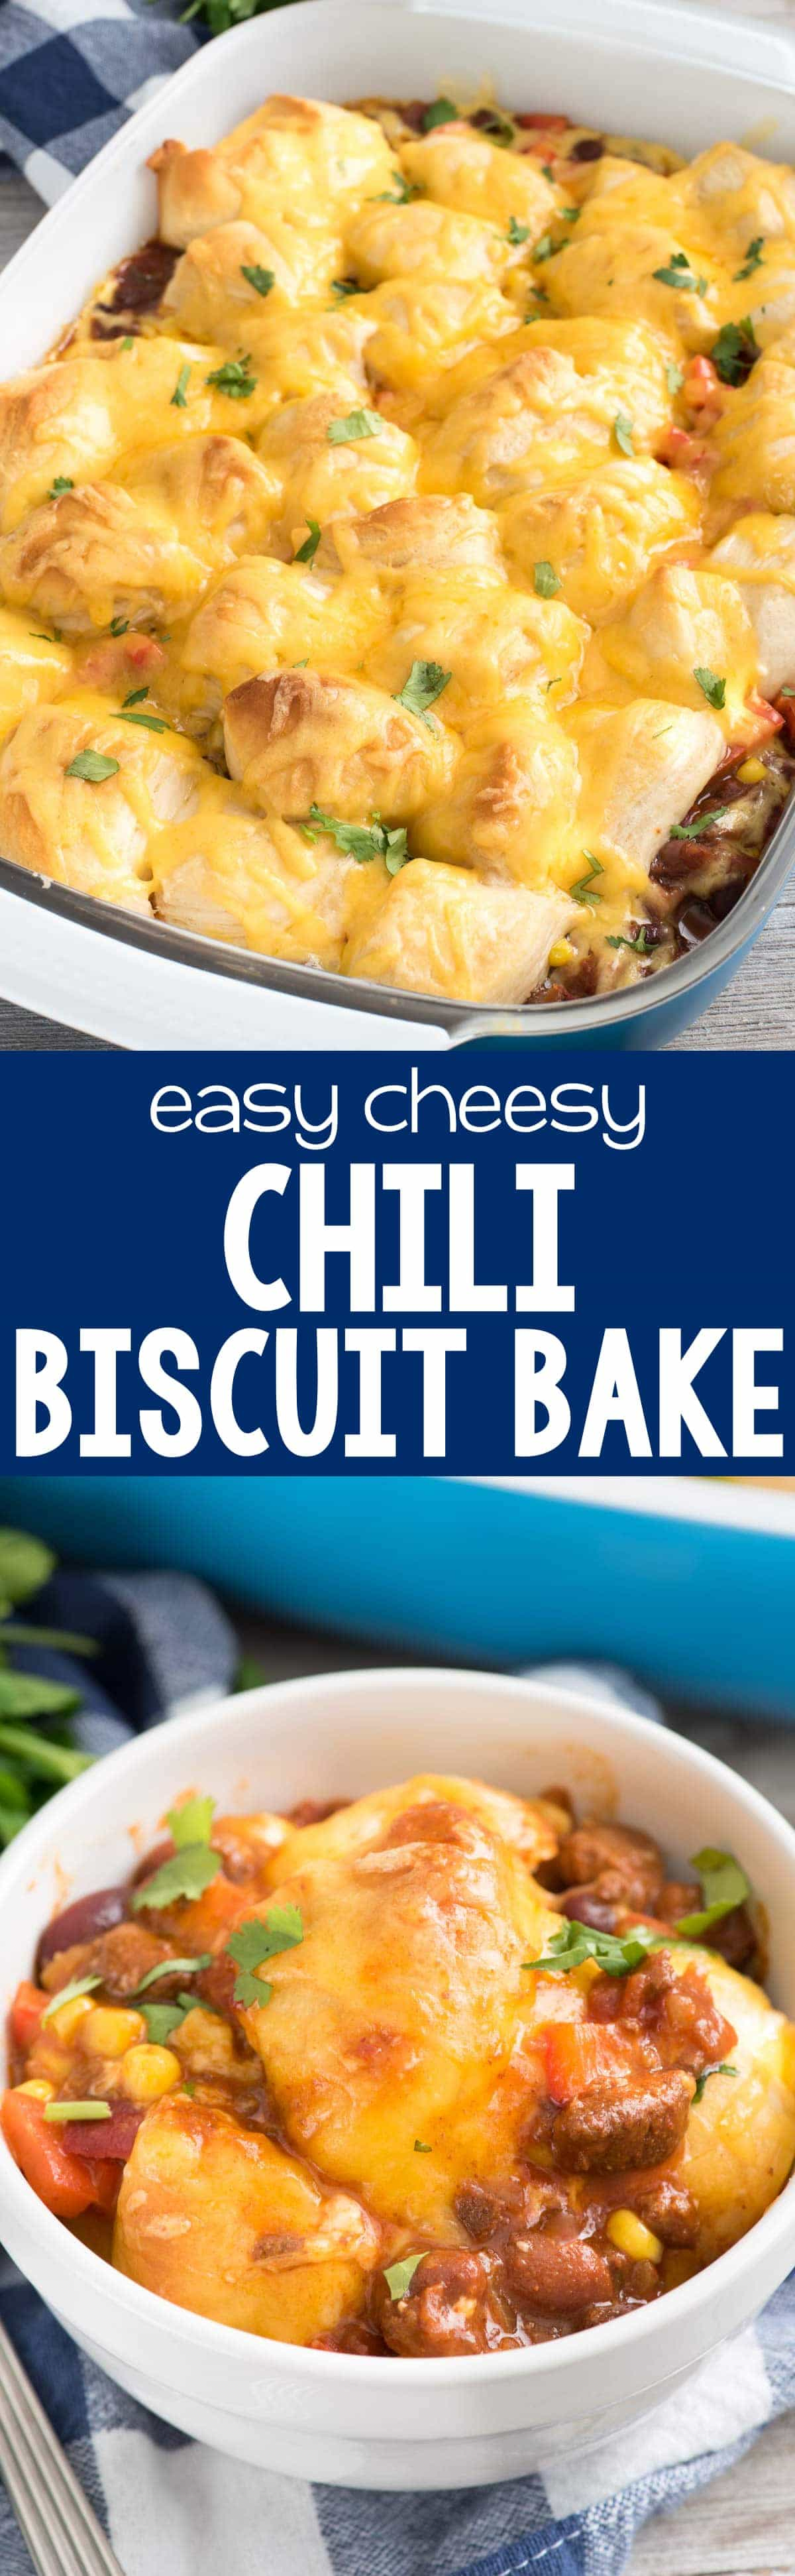 Easy Cheesy Chili Bake - this easy weeknight dinner recipe has just 5 ingredients! Chili is topped with vegetables, biscuits, and cheese and bakes up for a delicious meal.